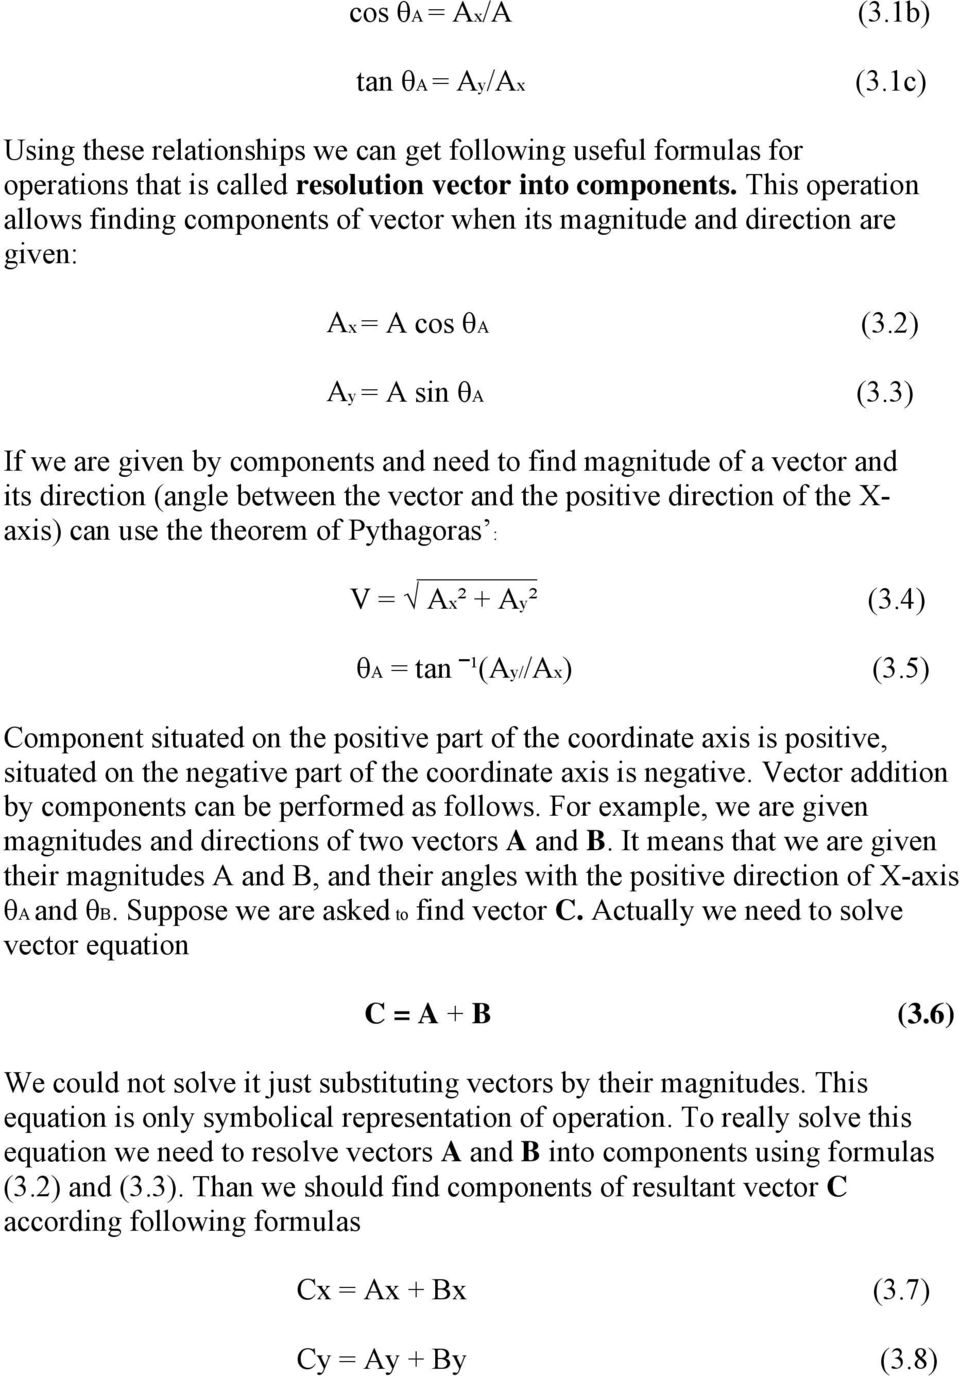 3) If we are given by components and need to find magnitude of a vector and its direction (angle between the vector and the positive direction of the X- axis) can use the theorem of Pythagoras : V =